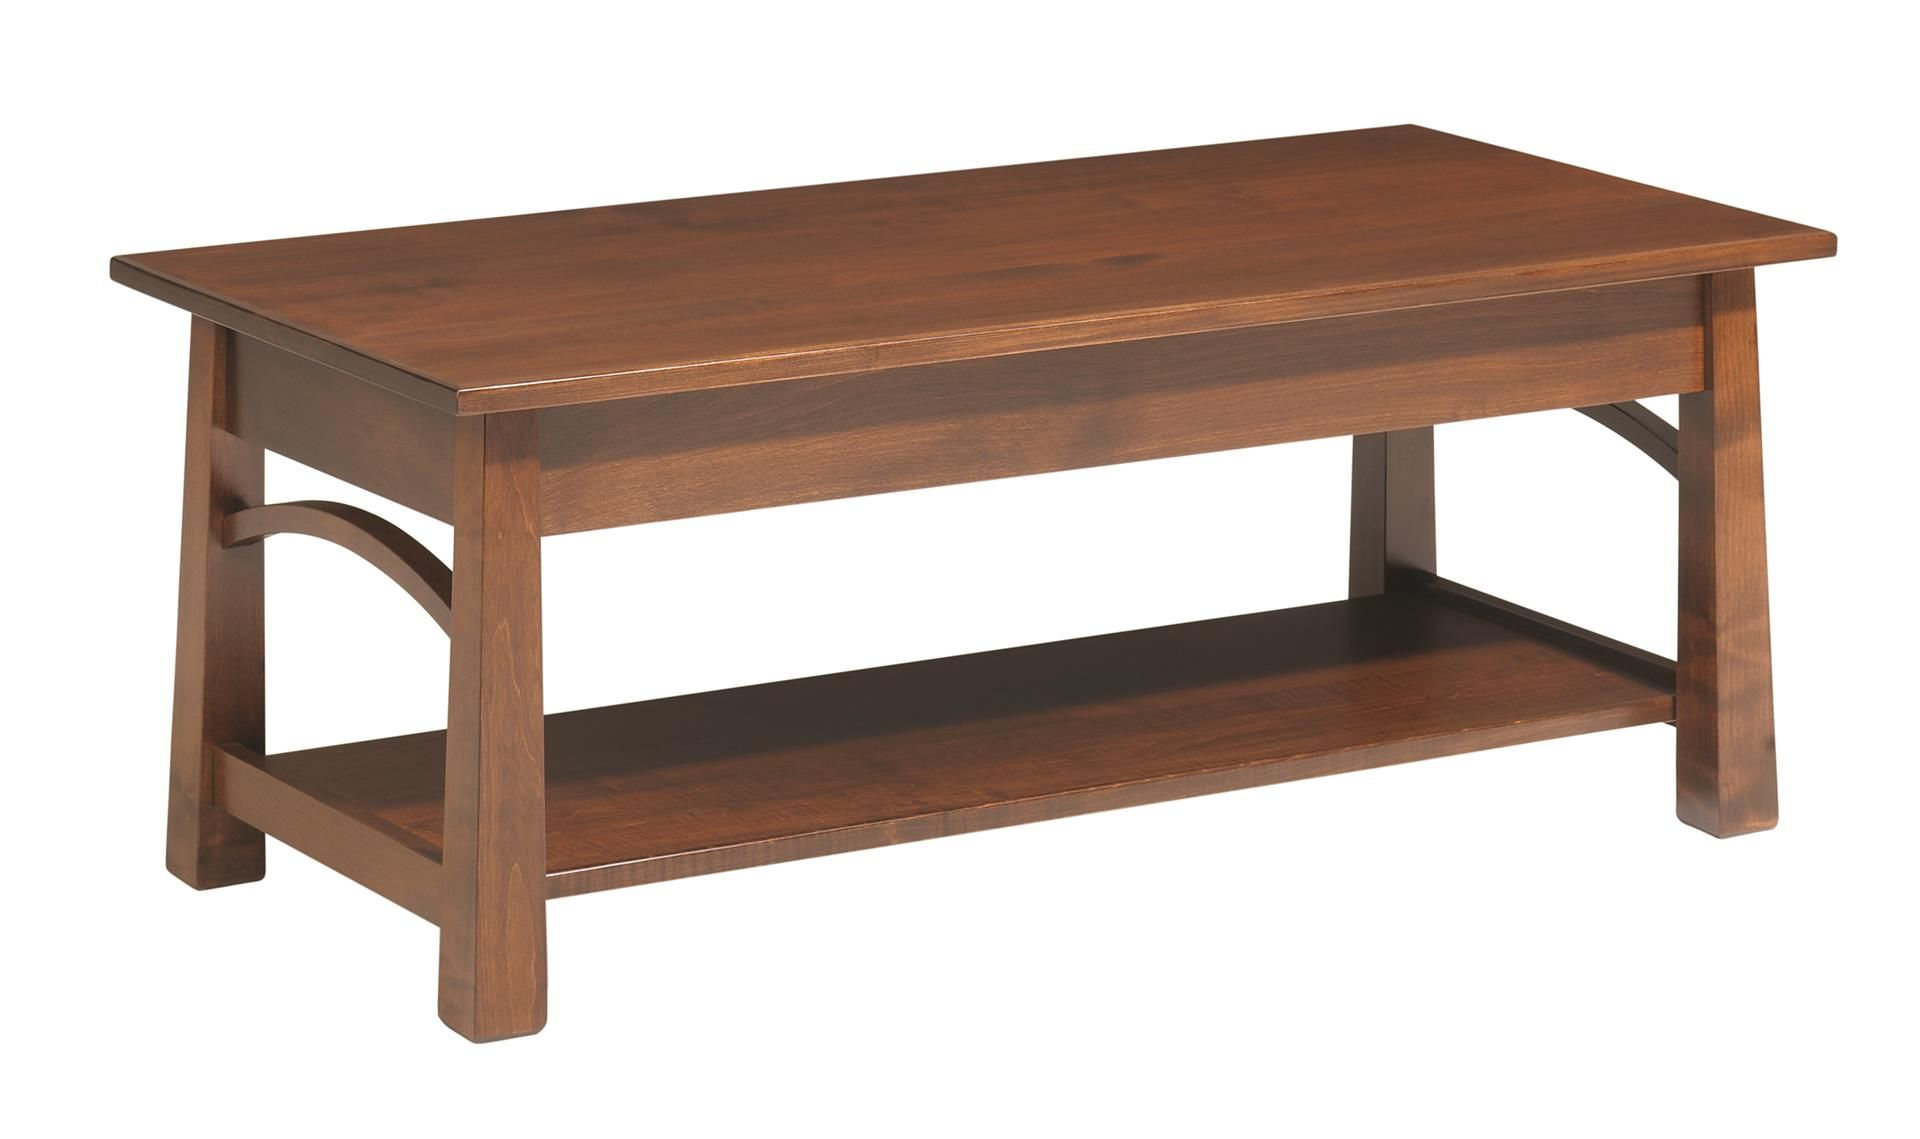 Amish madison coffee table furniture table recycled